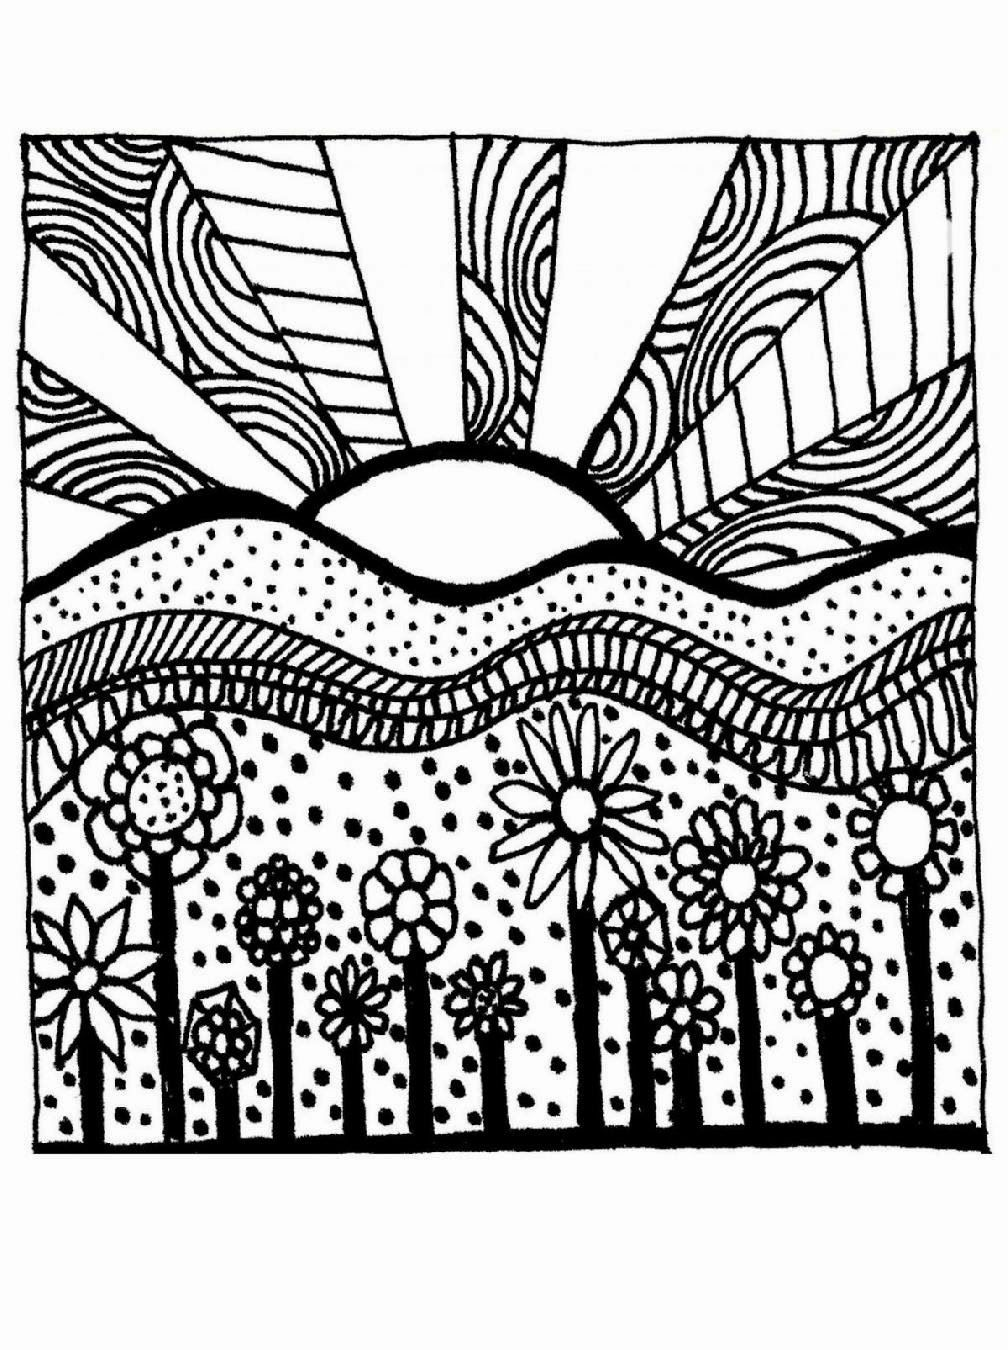 Free coloring pages for adults - Free Coloring Pages For Adults Koloringpages